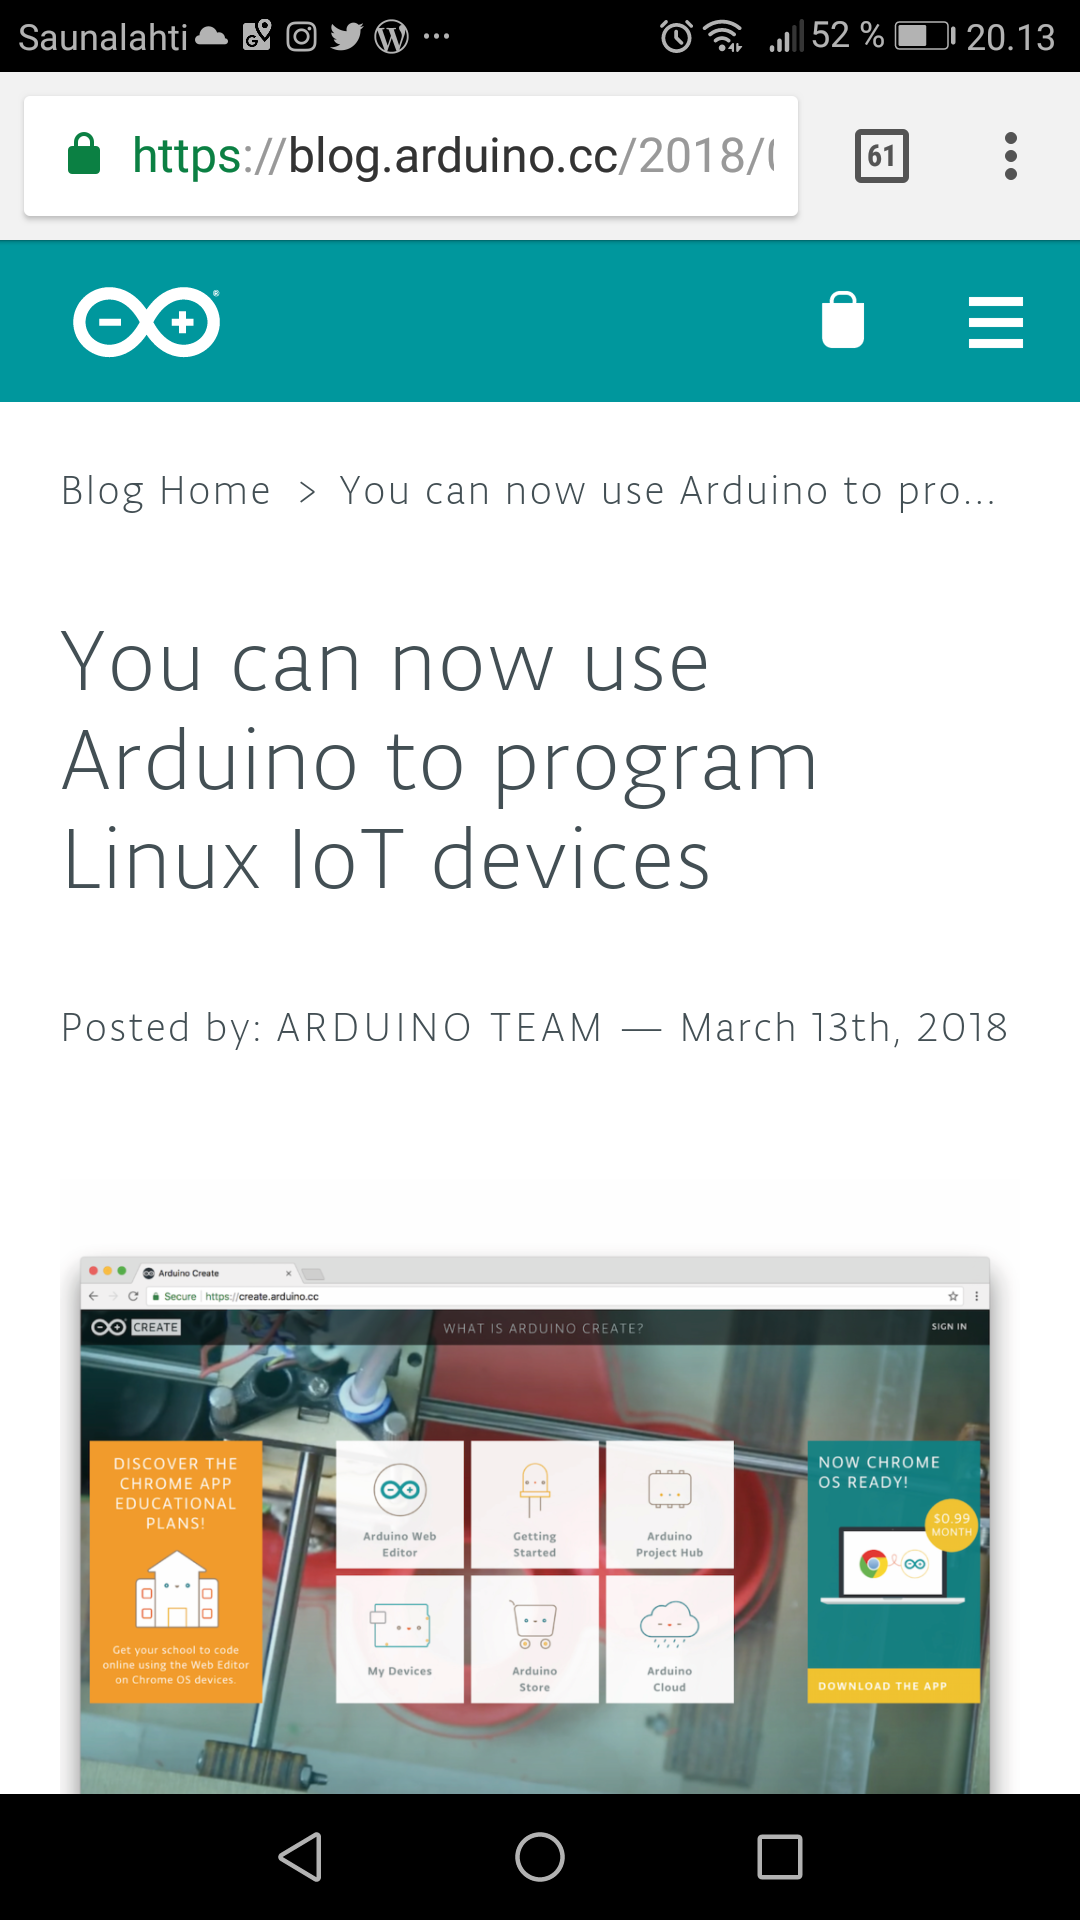 Arduino Blog You Can Now Use To Program Linux Iot Devices Raspberry Pi Gpio Ruby Wiringpi 7 Comments